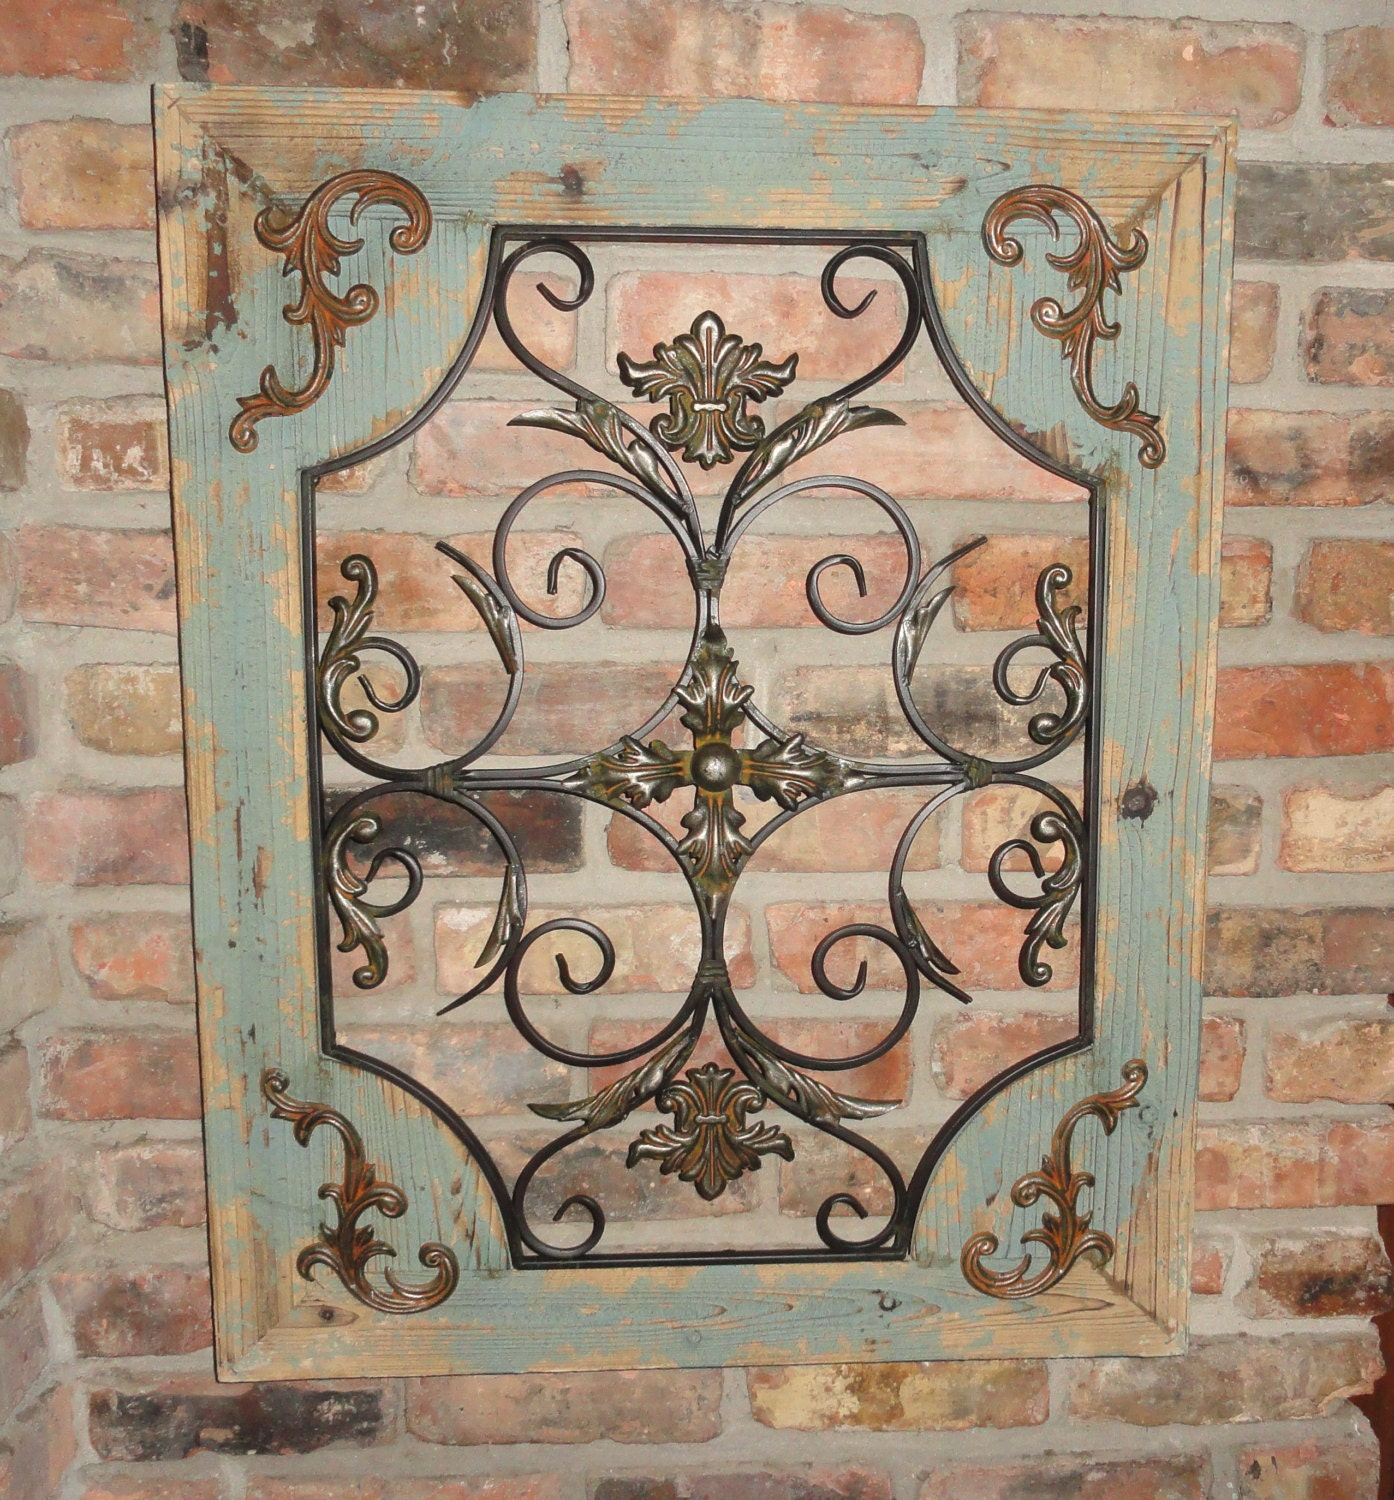 Wood And Metal Wall Decor Rustic Turquoise Wood & Metal Wall Decor Cottage Chic Shabby